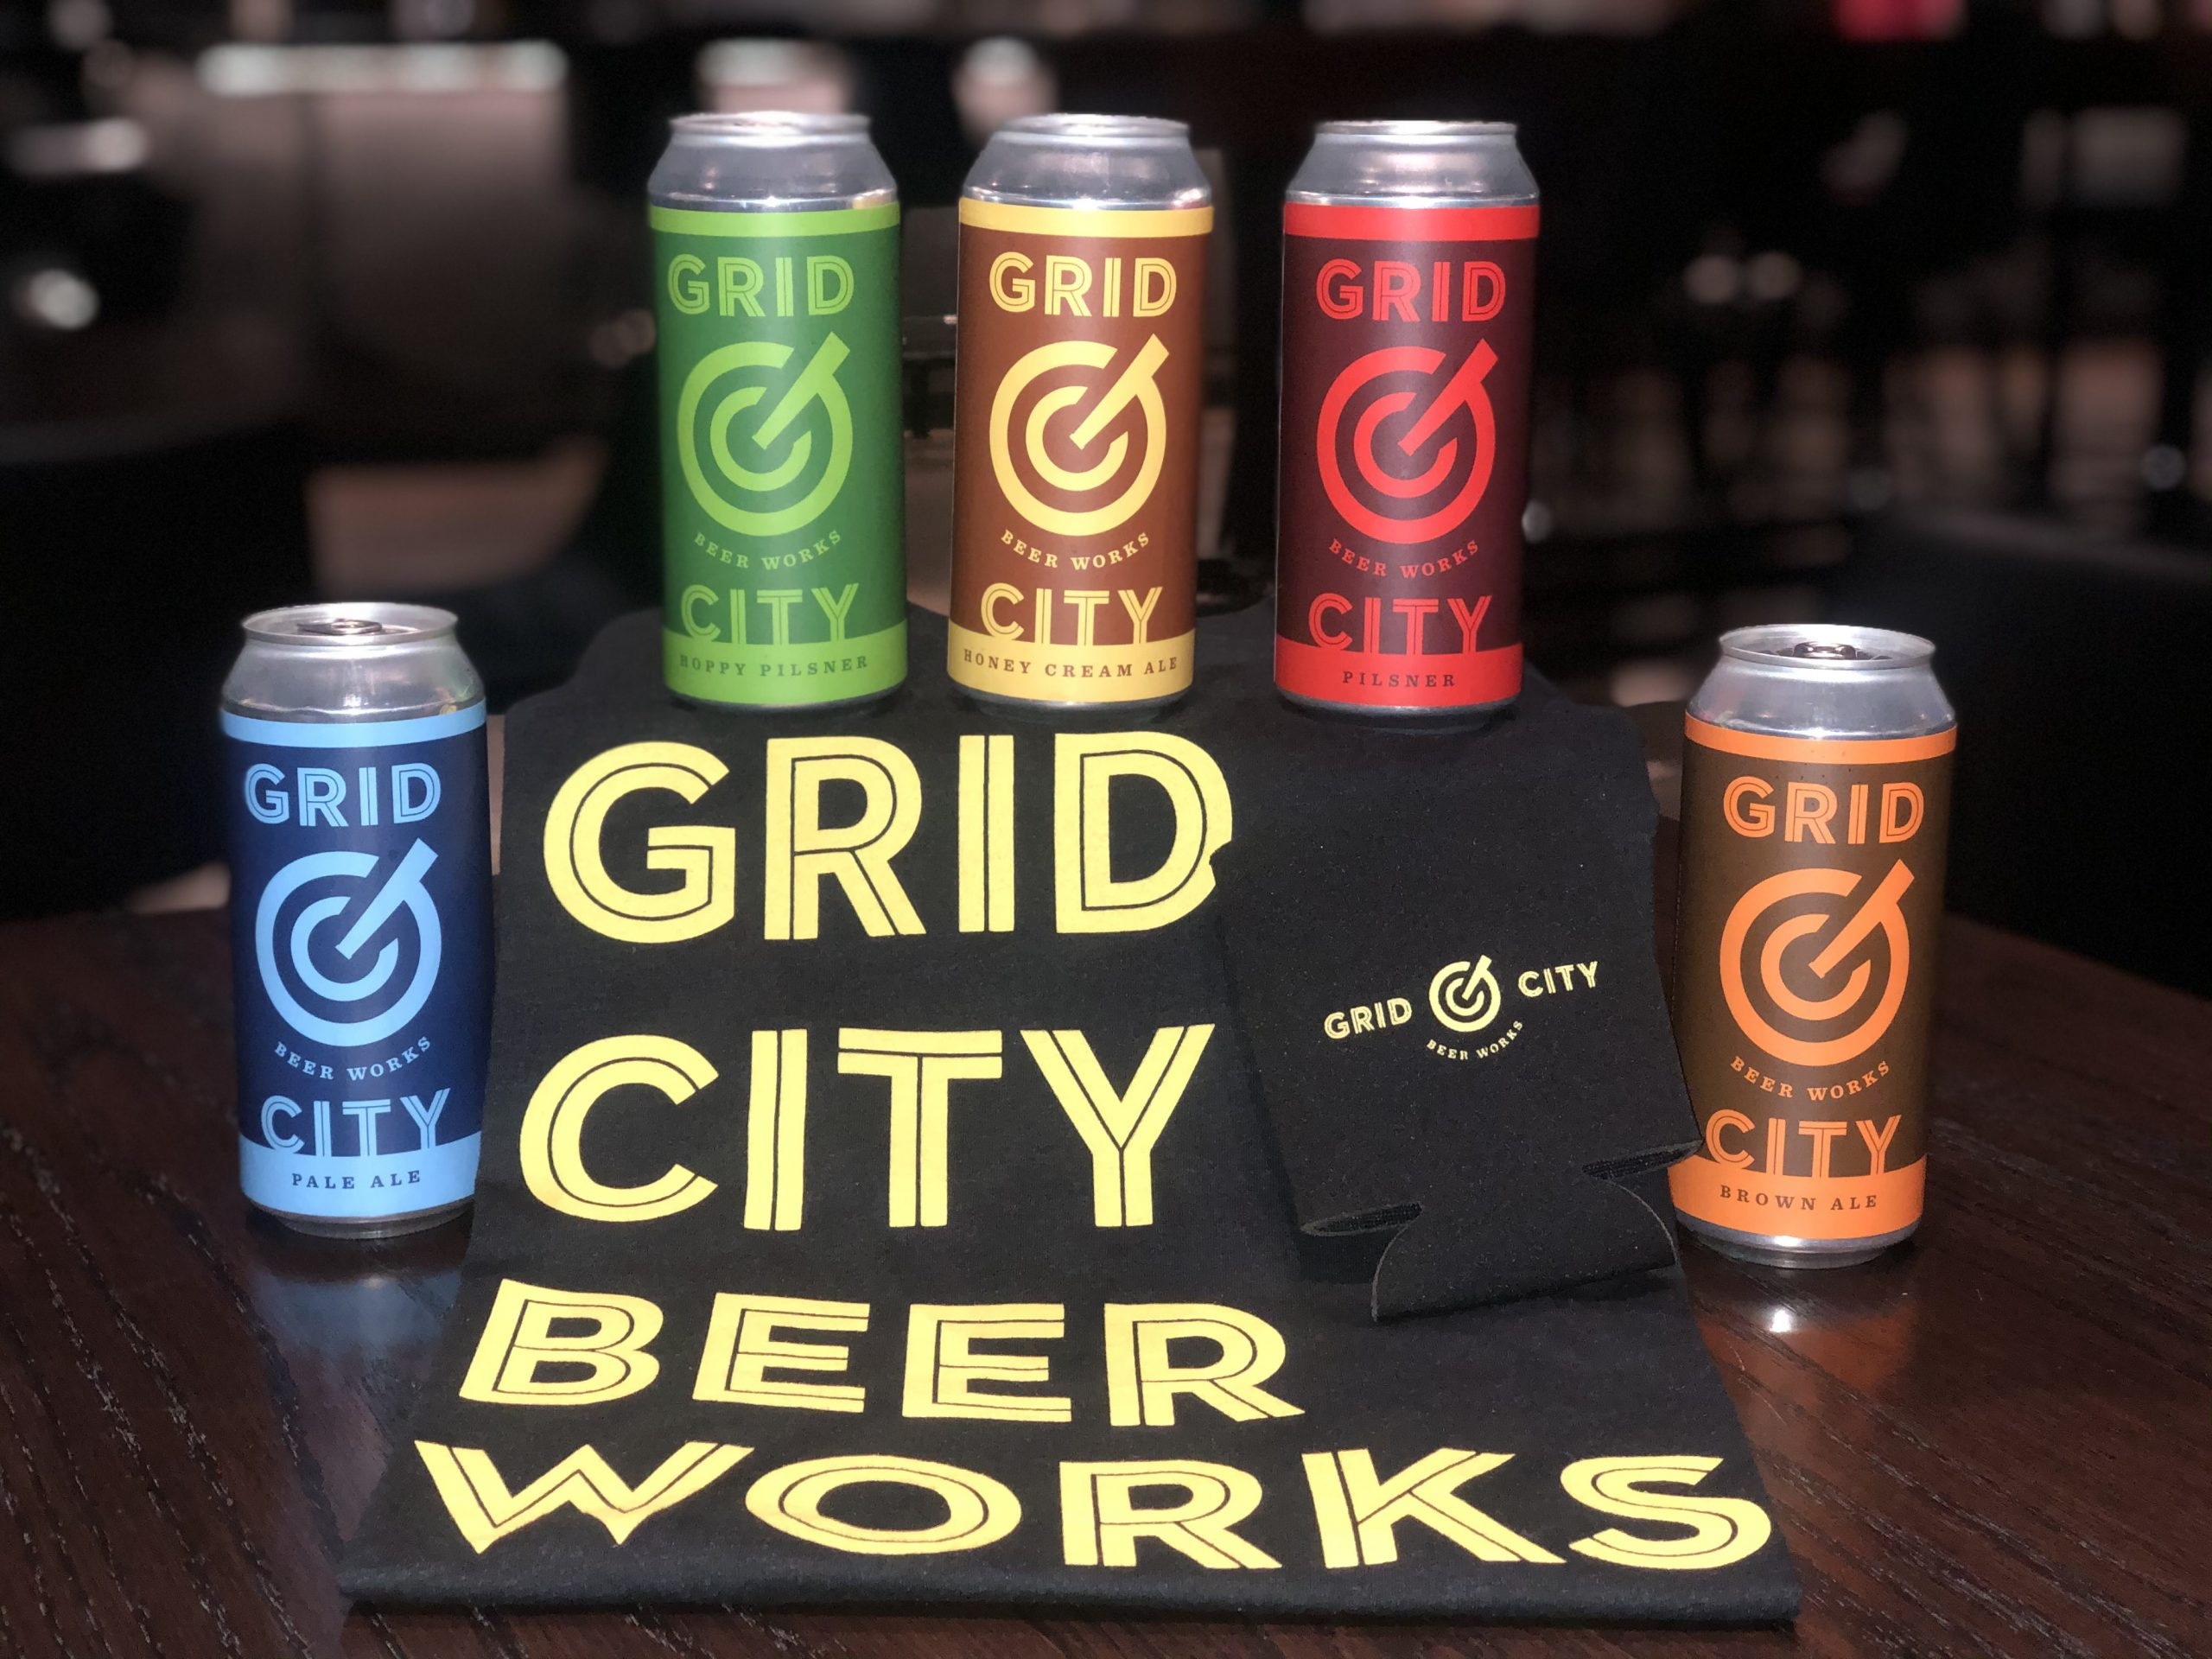 Grid City Beer Works Gift Set – Small Box